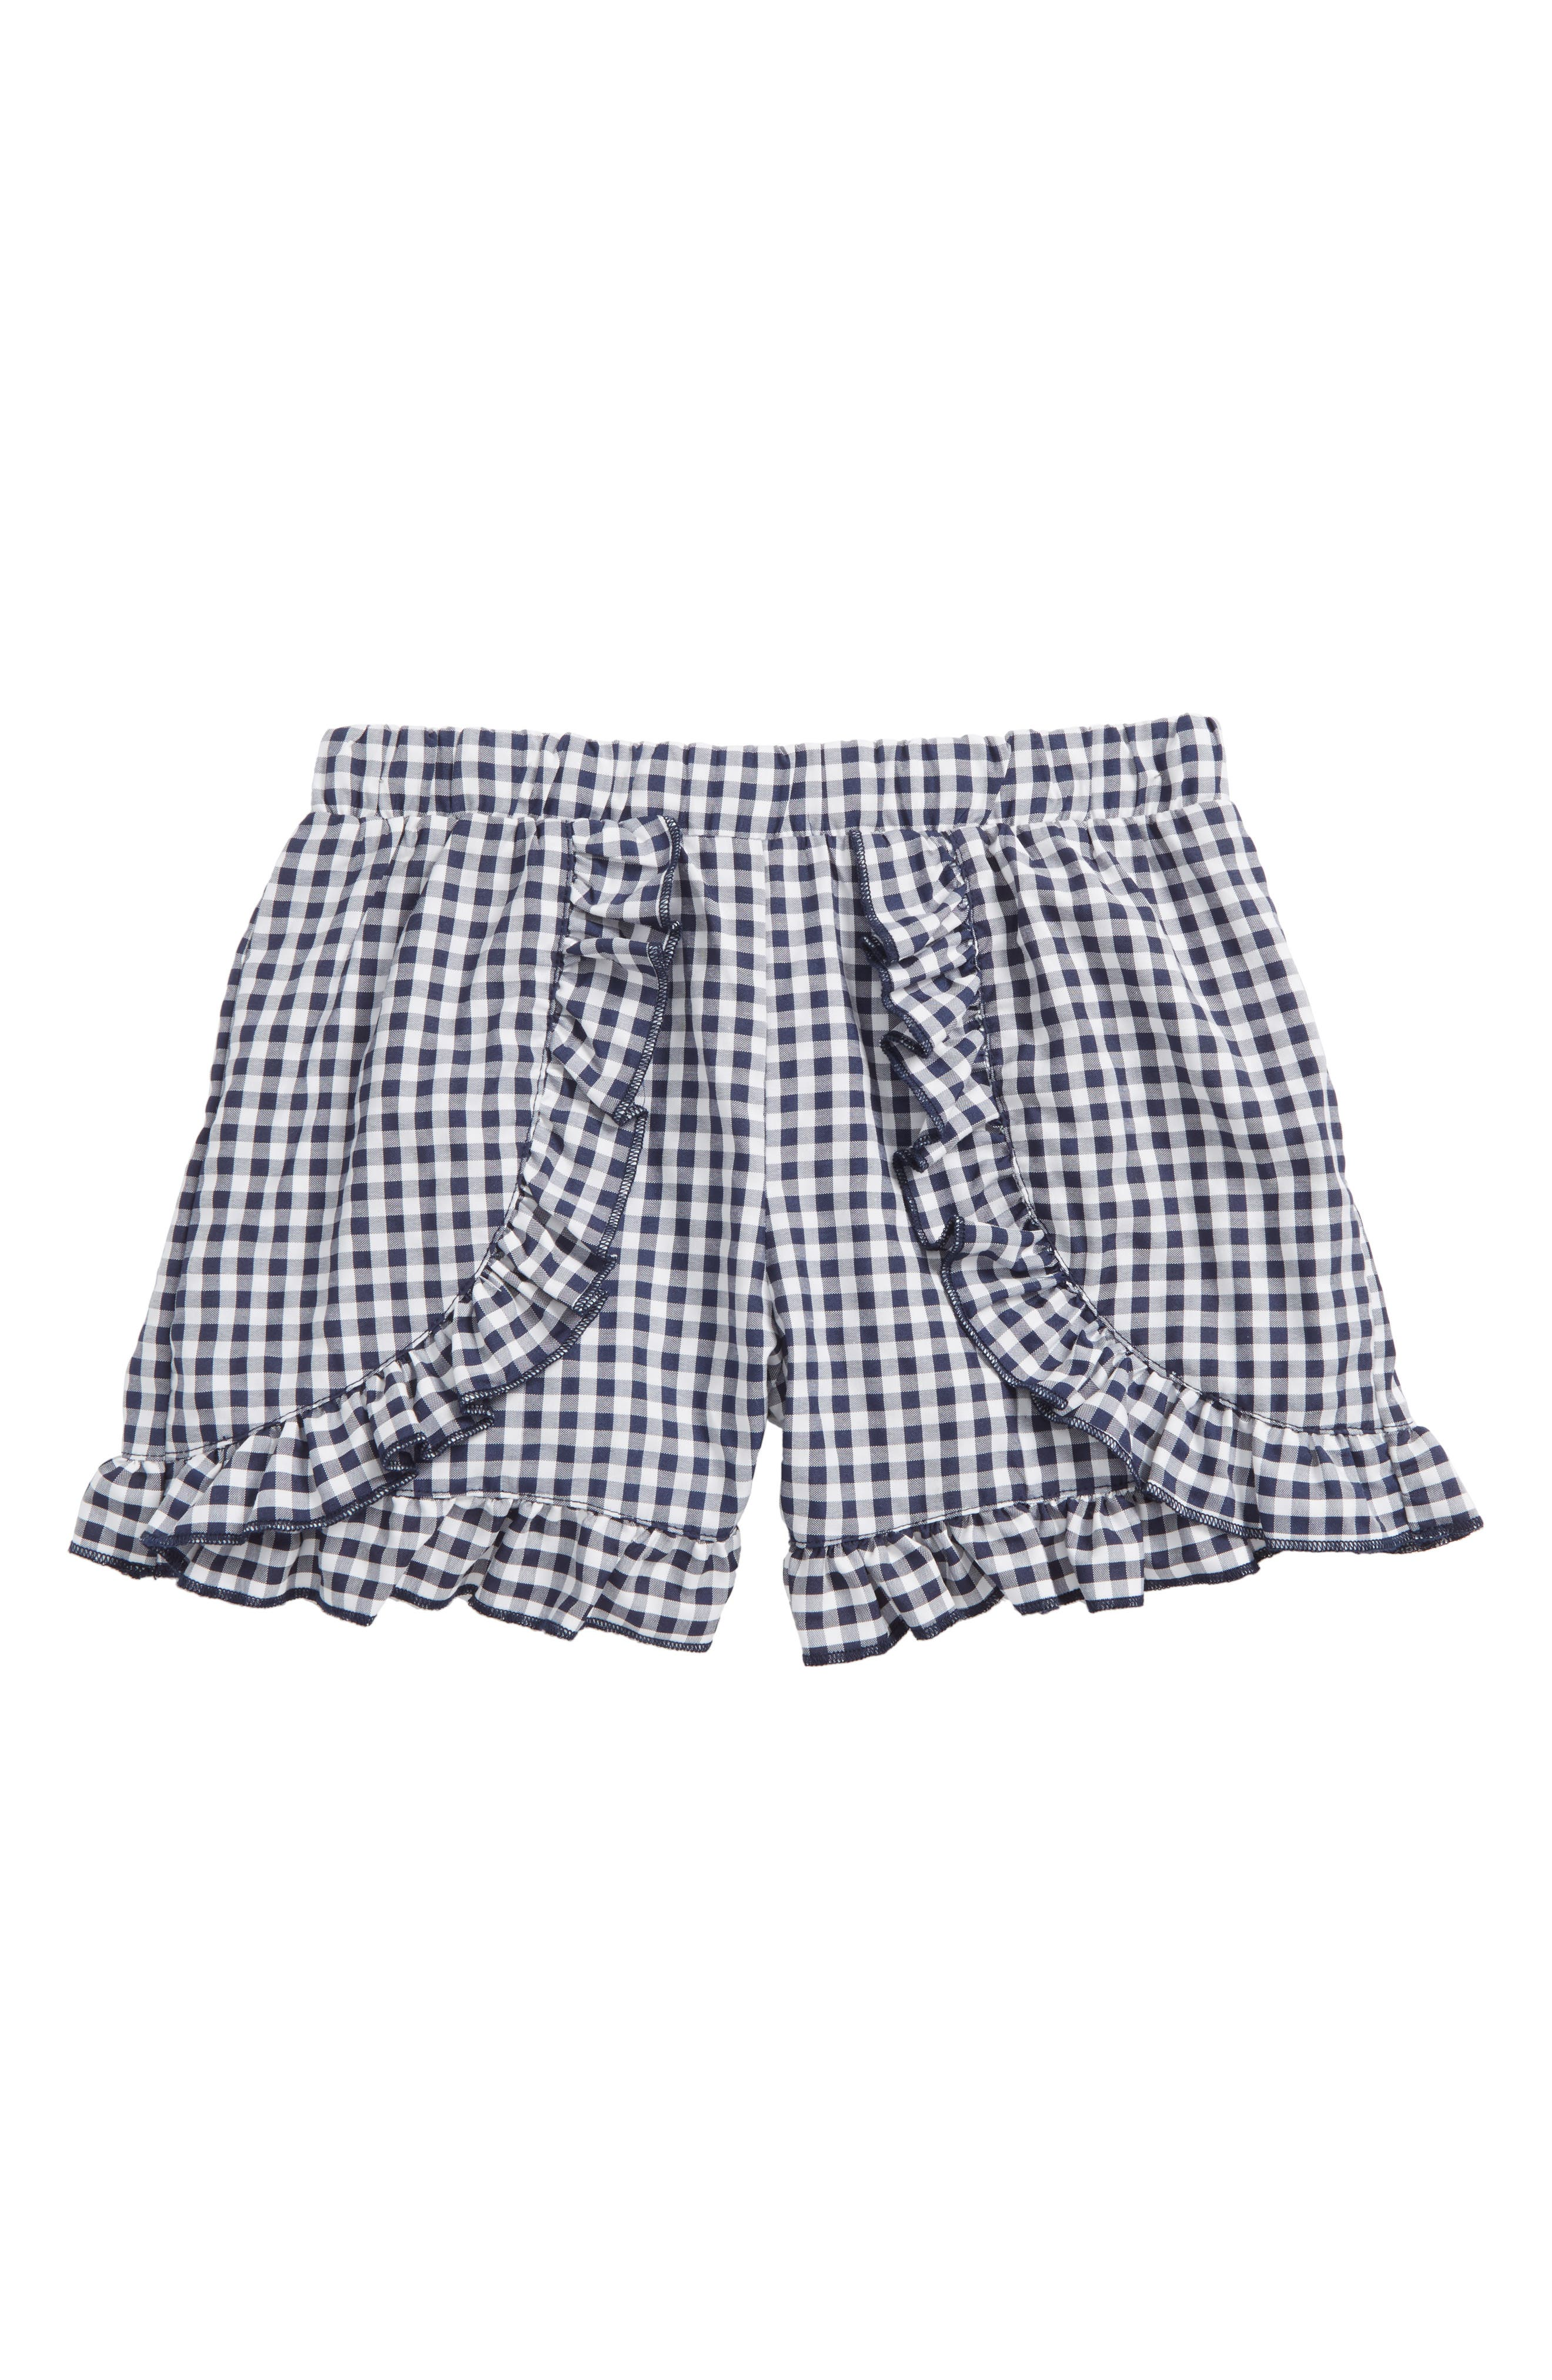 Ruffle Gingham Shorts,                         Main,                         color, Navy White